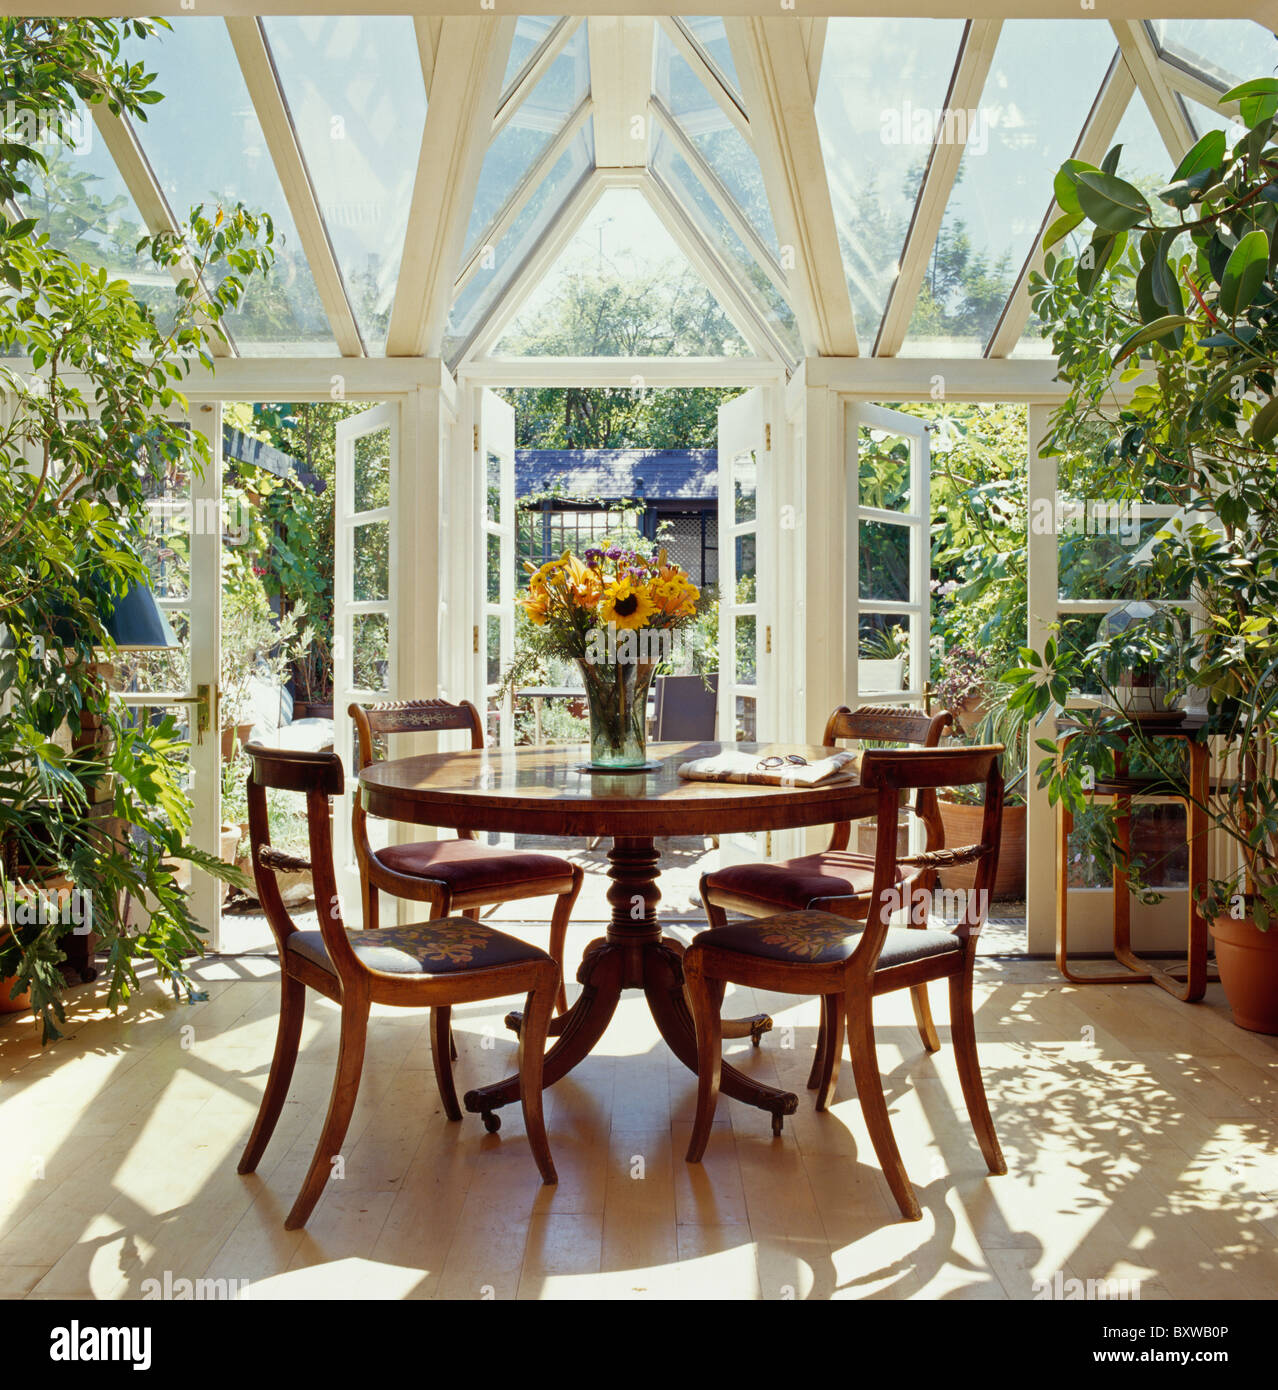 antique circular table and antique chairs in conservatory dining